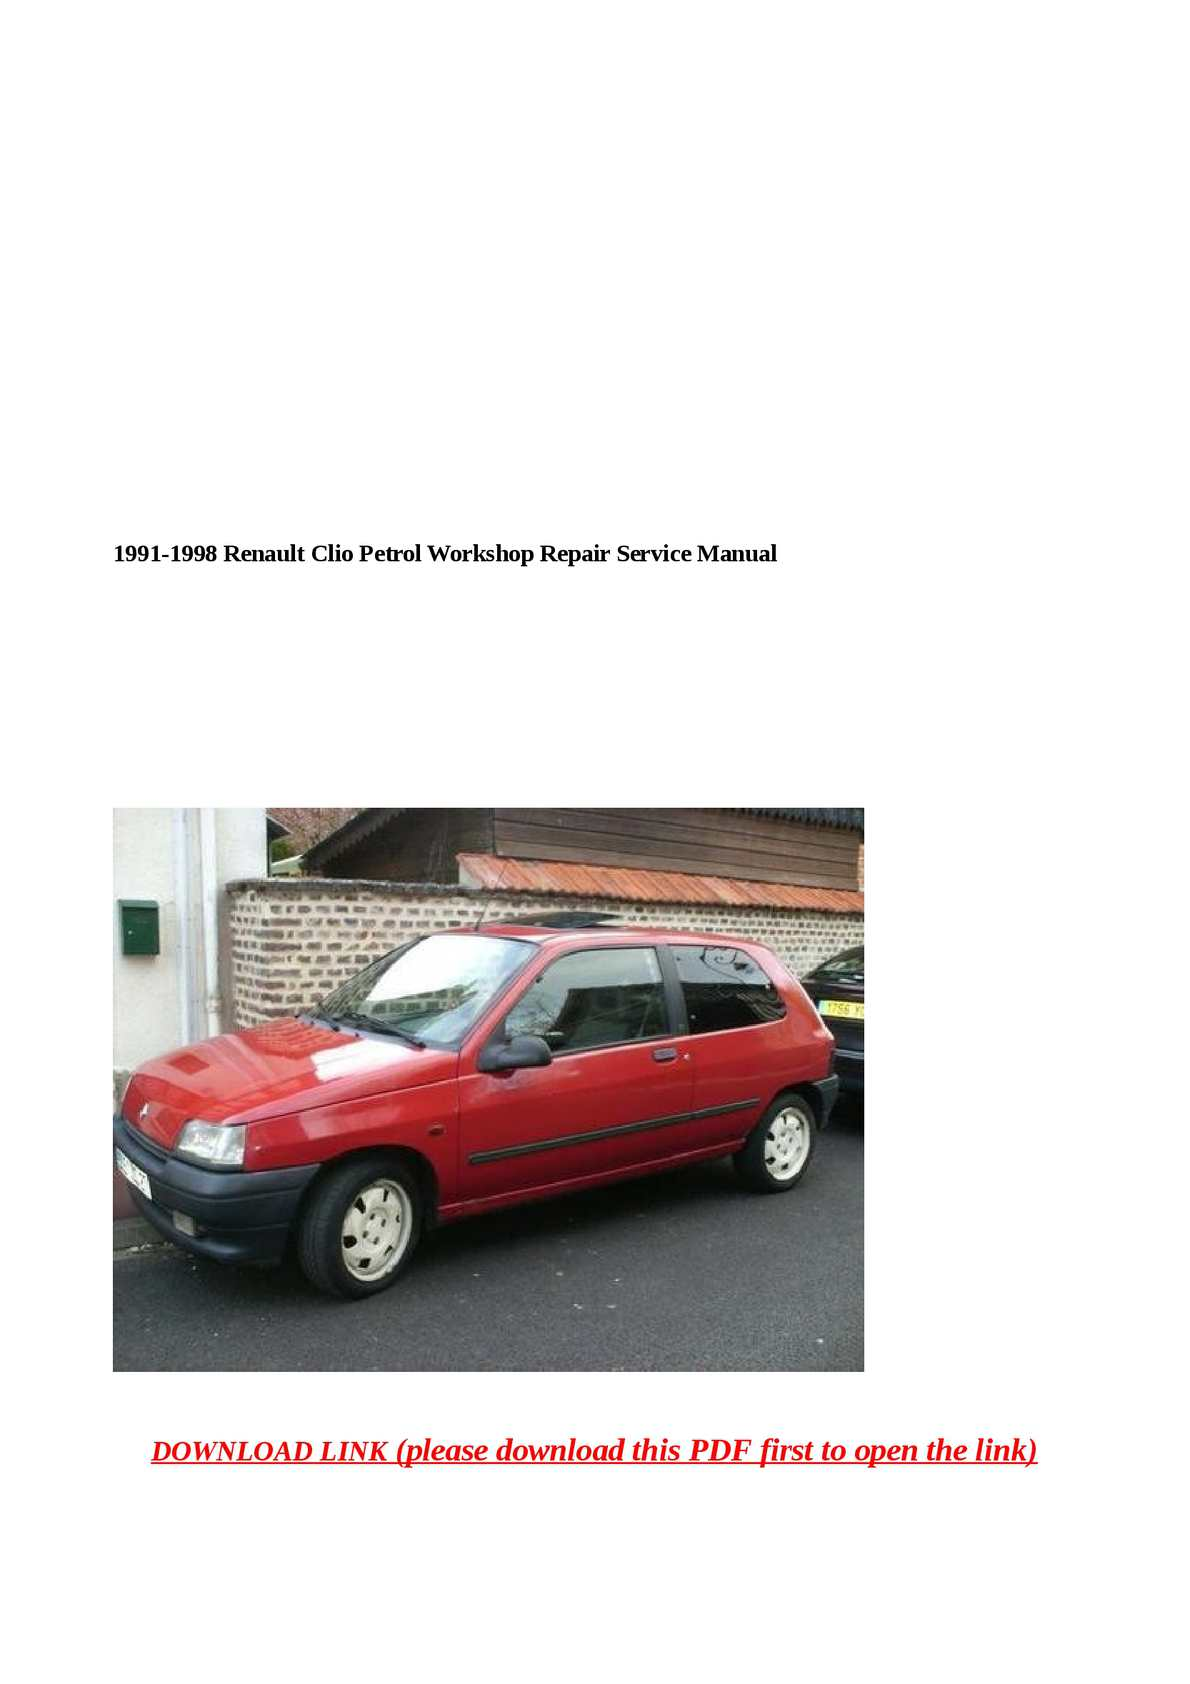 Renault clio ii manual pdf renault clio 1 manual pdf 1996 array calam o 1991 1998 renault clio petrol workshop repair service manual rh calameo fandeluxe Gallery